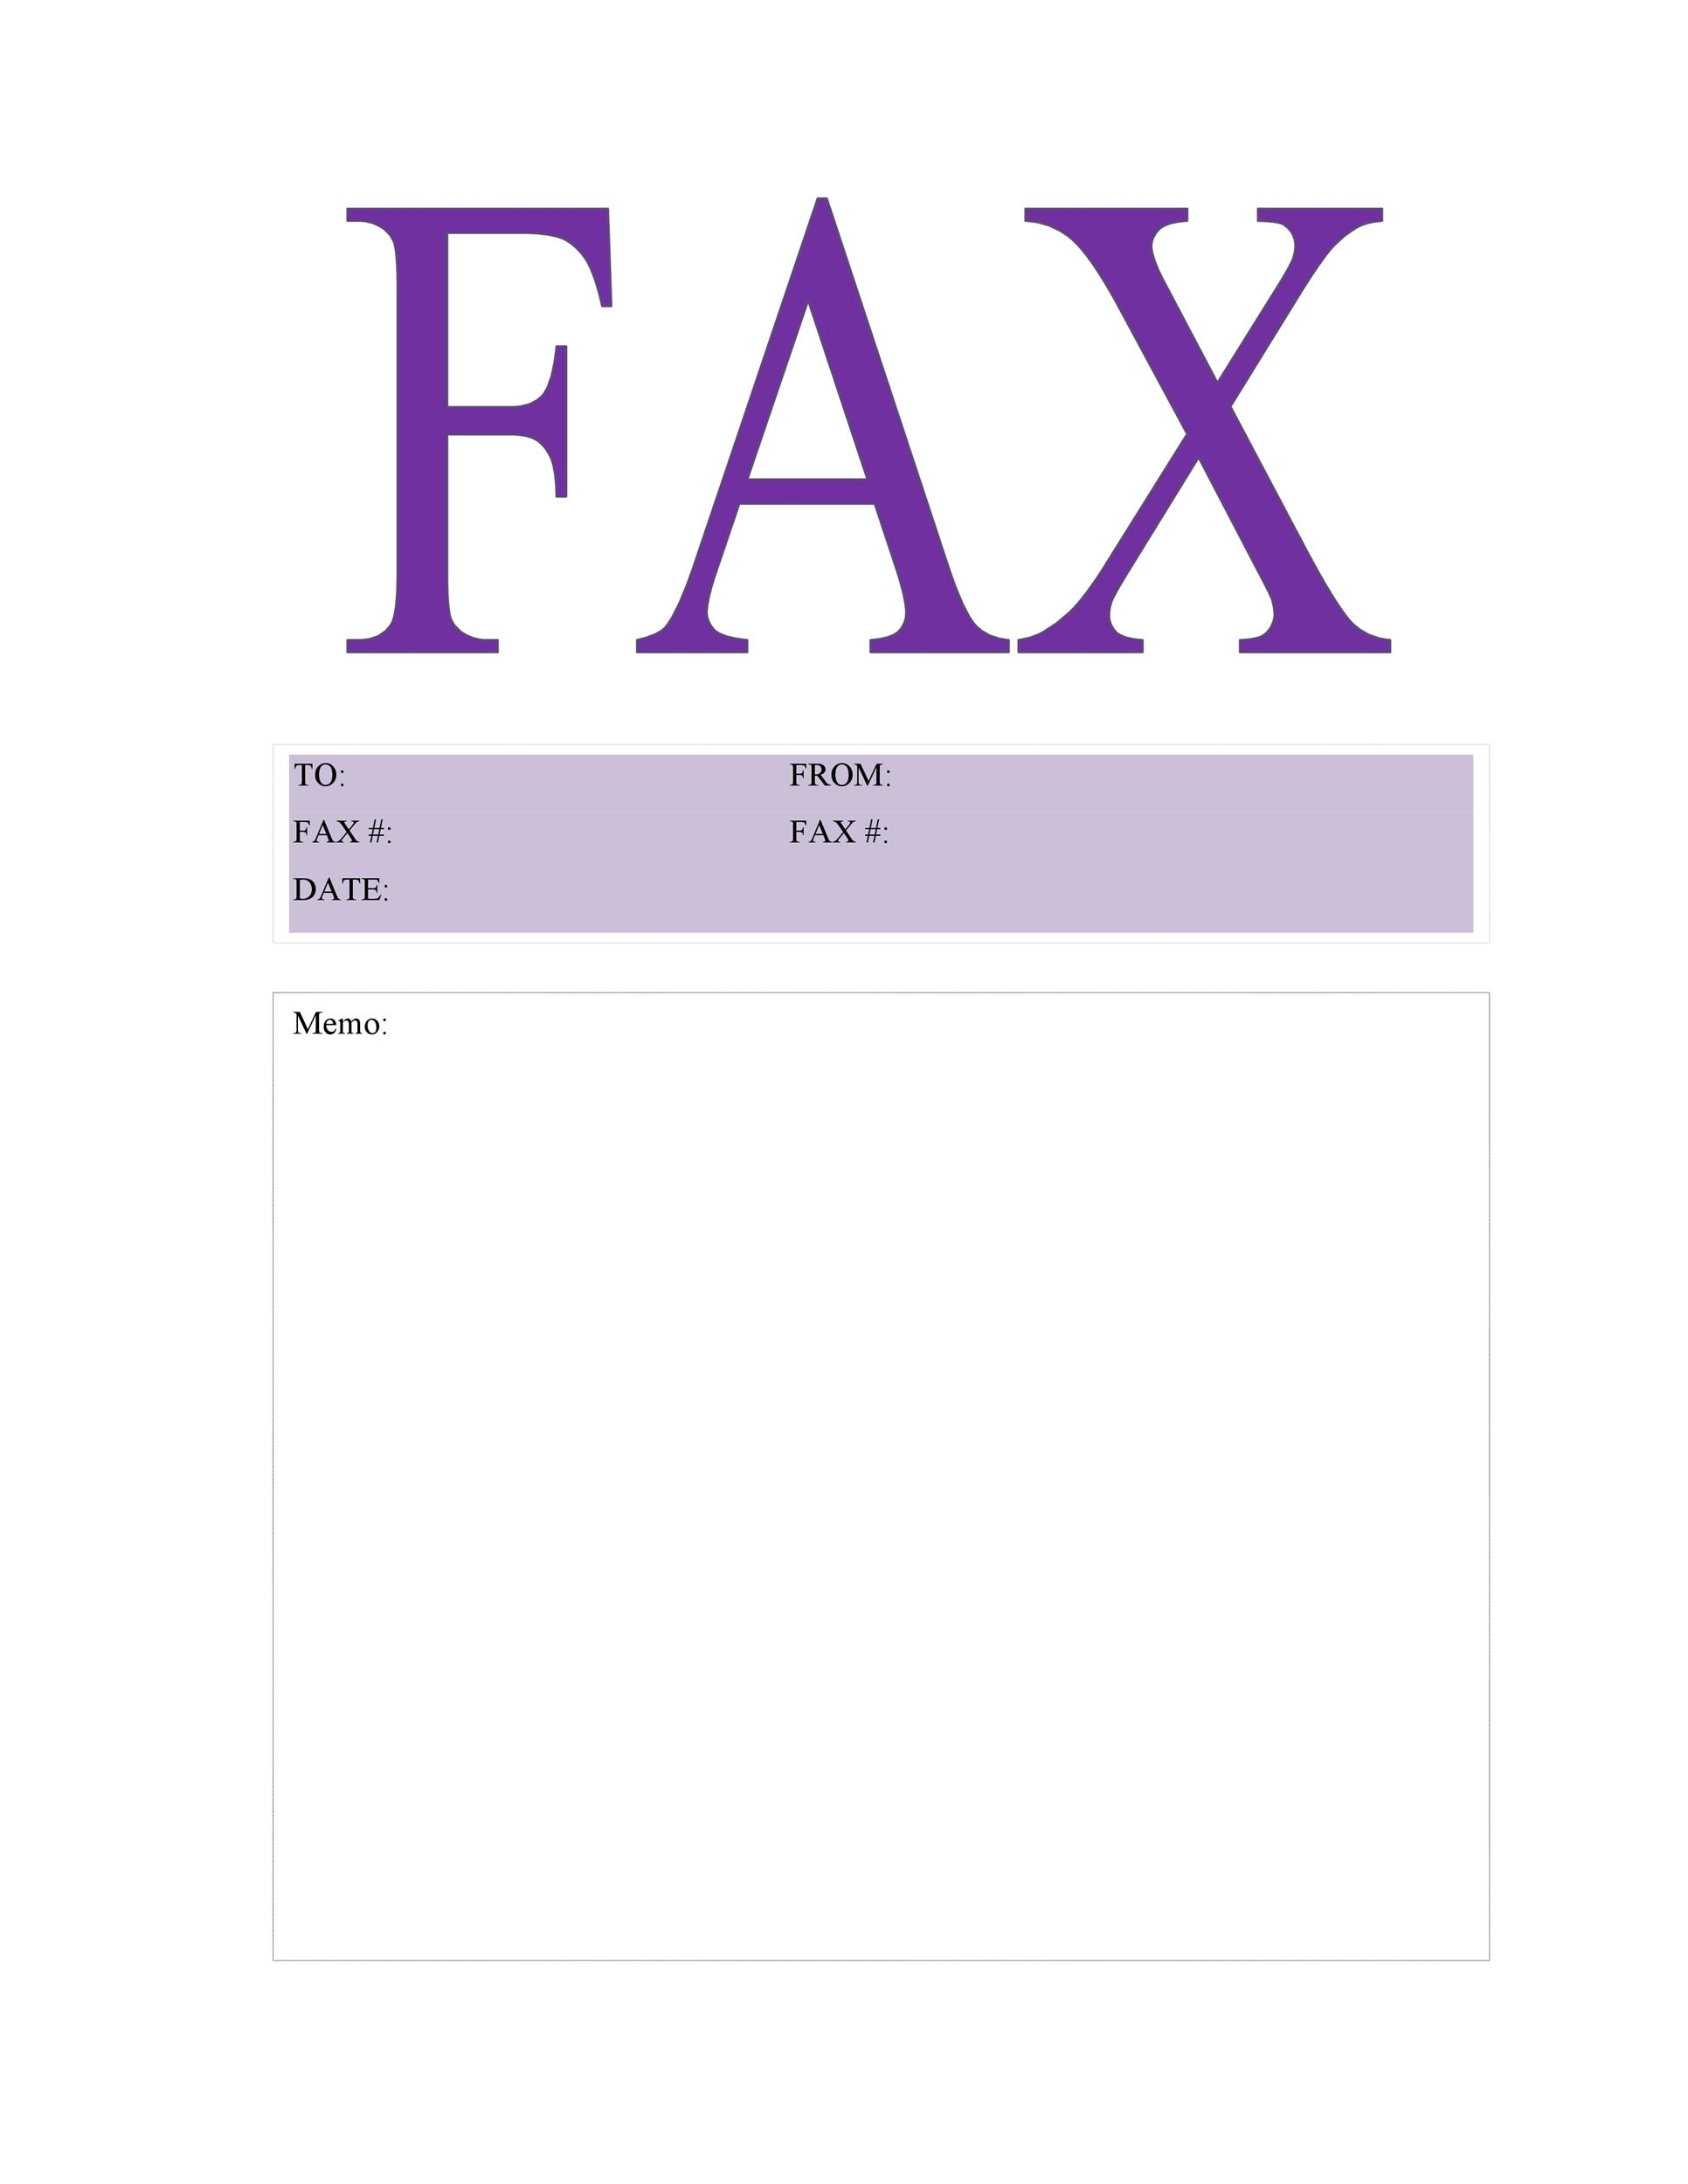 40 Printable Fax Cover Sheet Templates - Template Lab - fax cover sheet templates